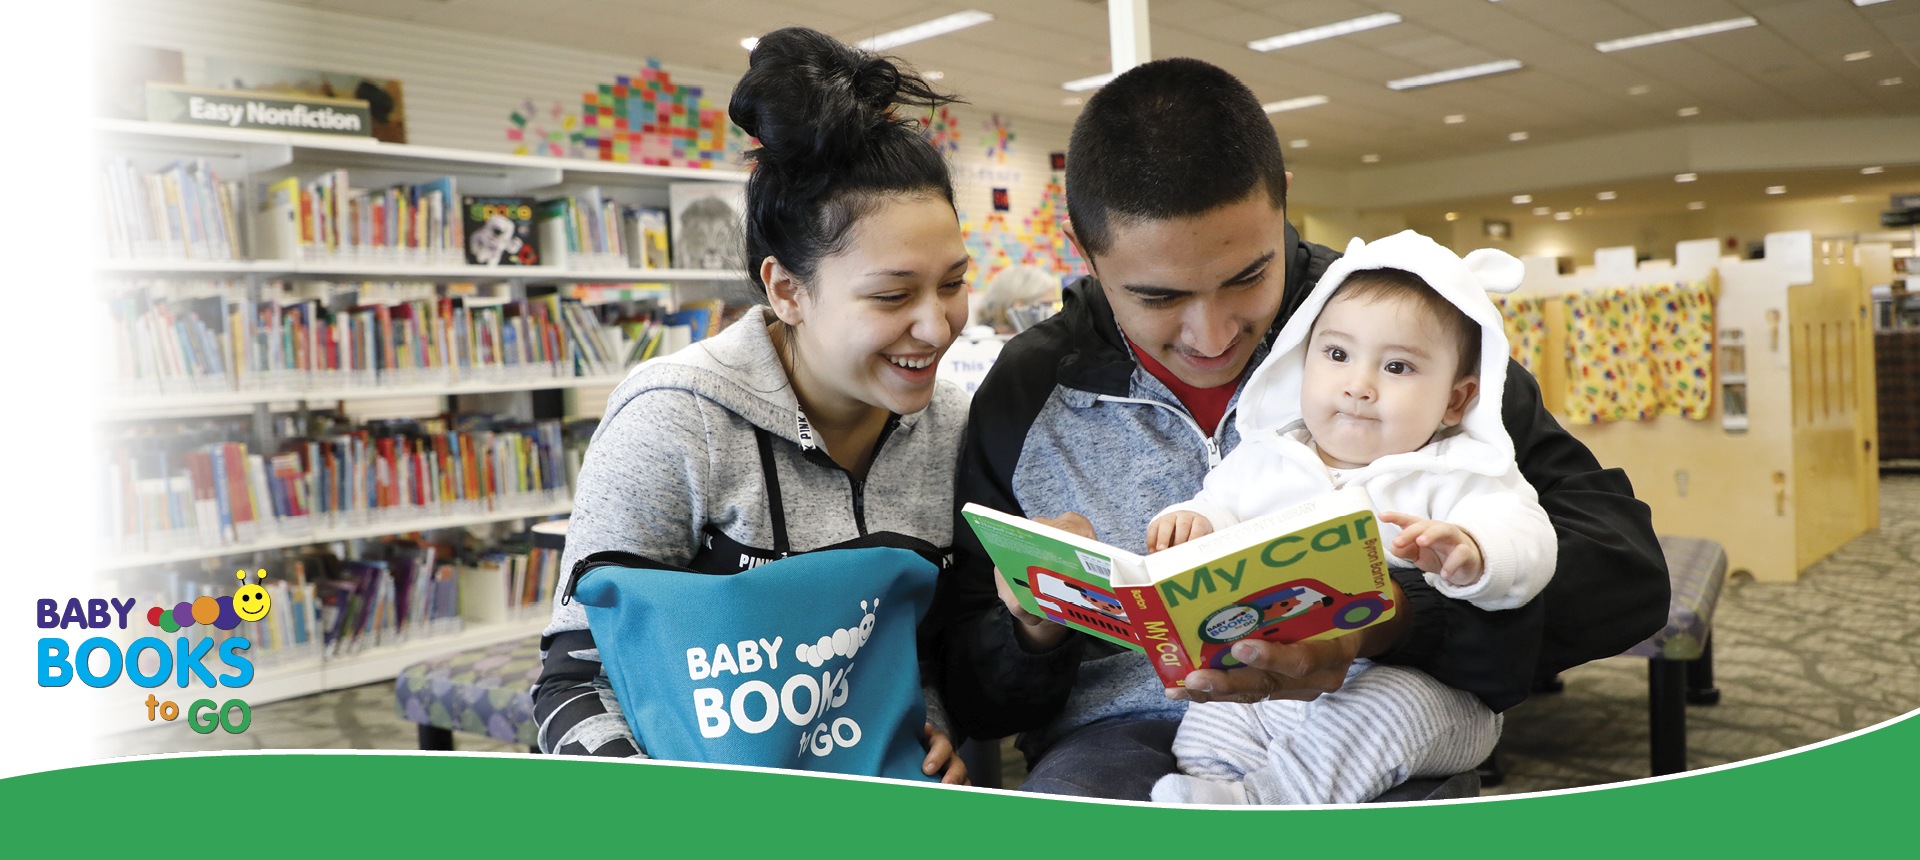 Learn about Baby Books to Go